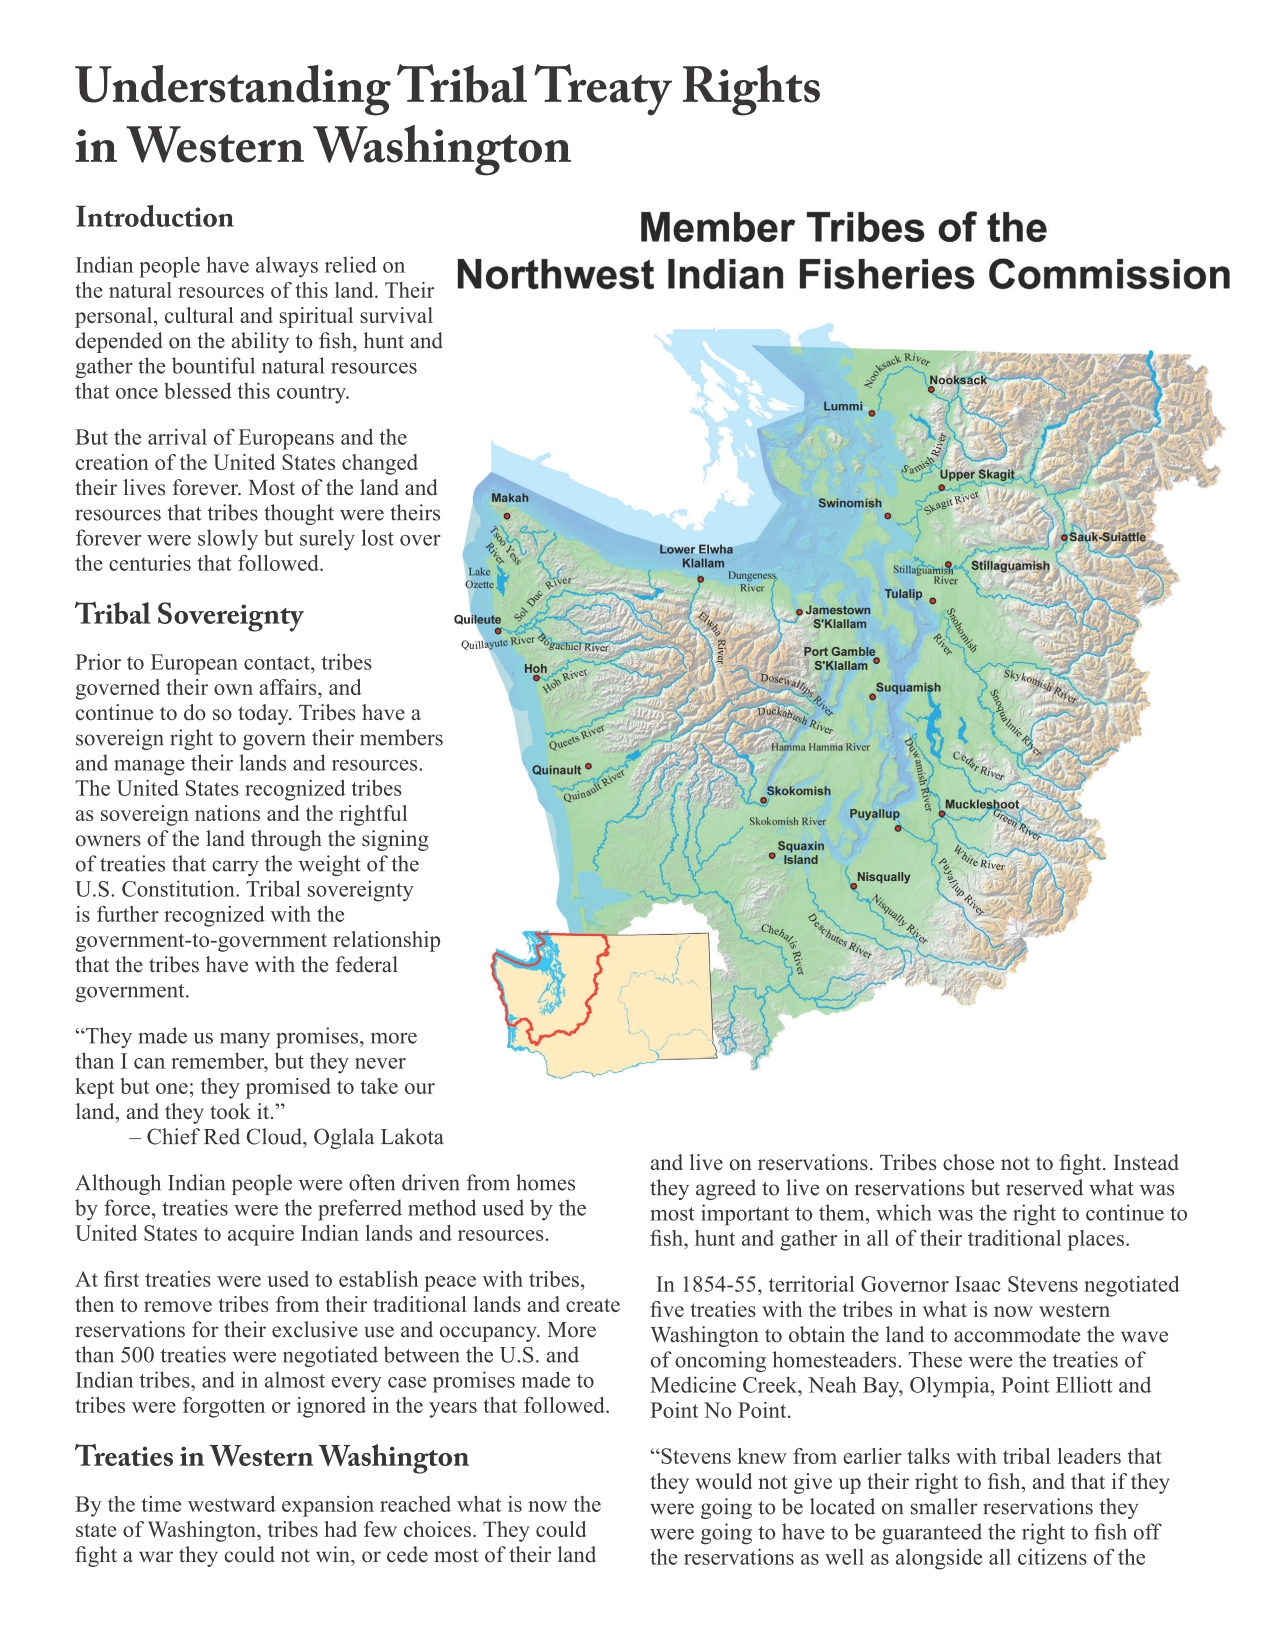 Treaties | Northwest Indian Fisheries Commission